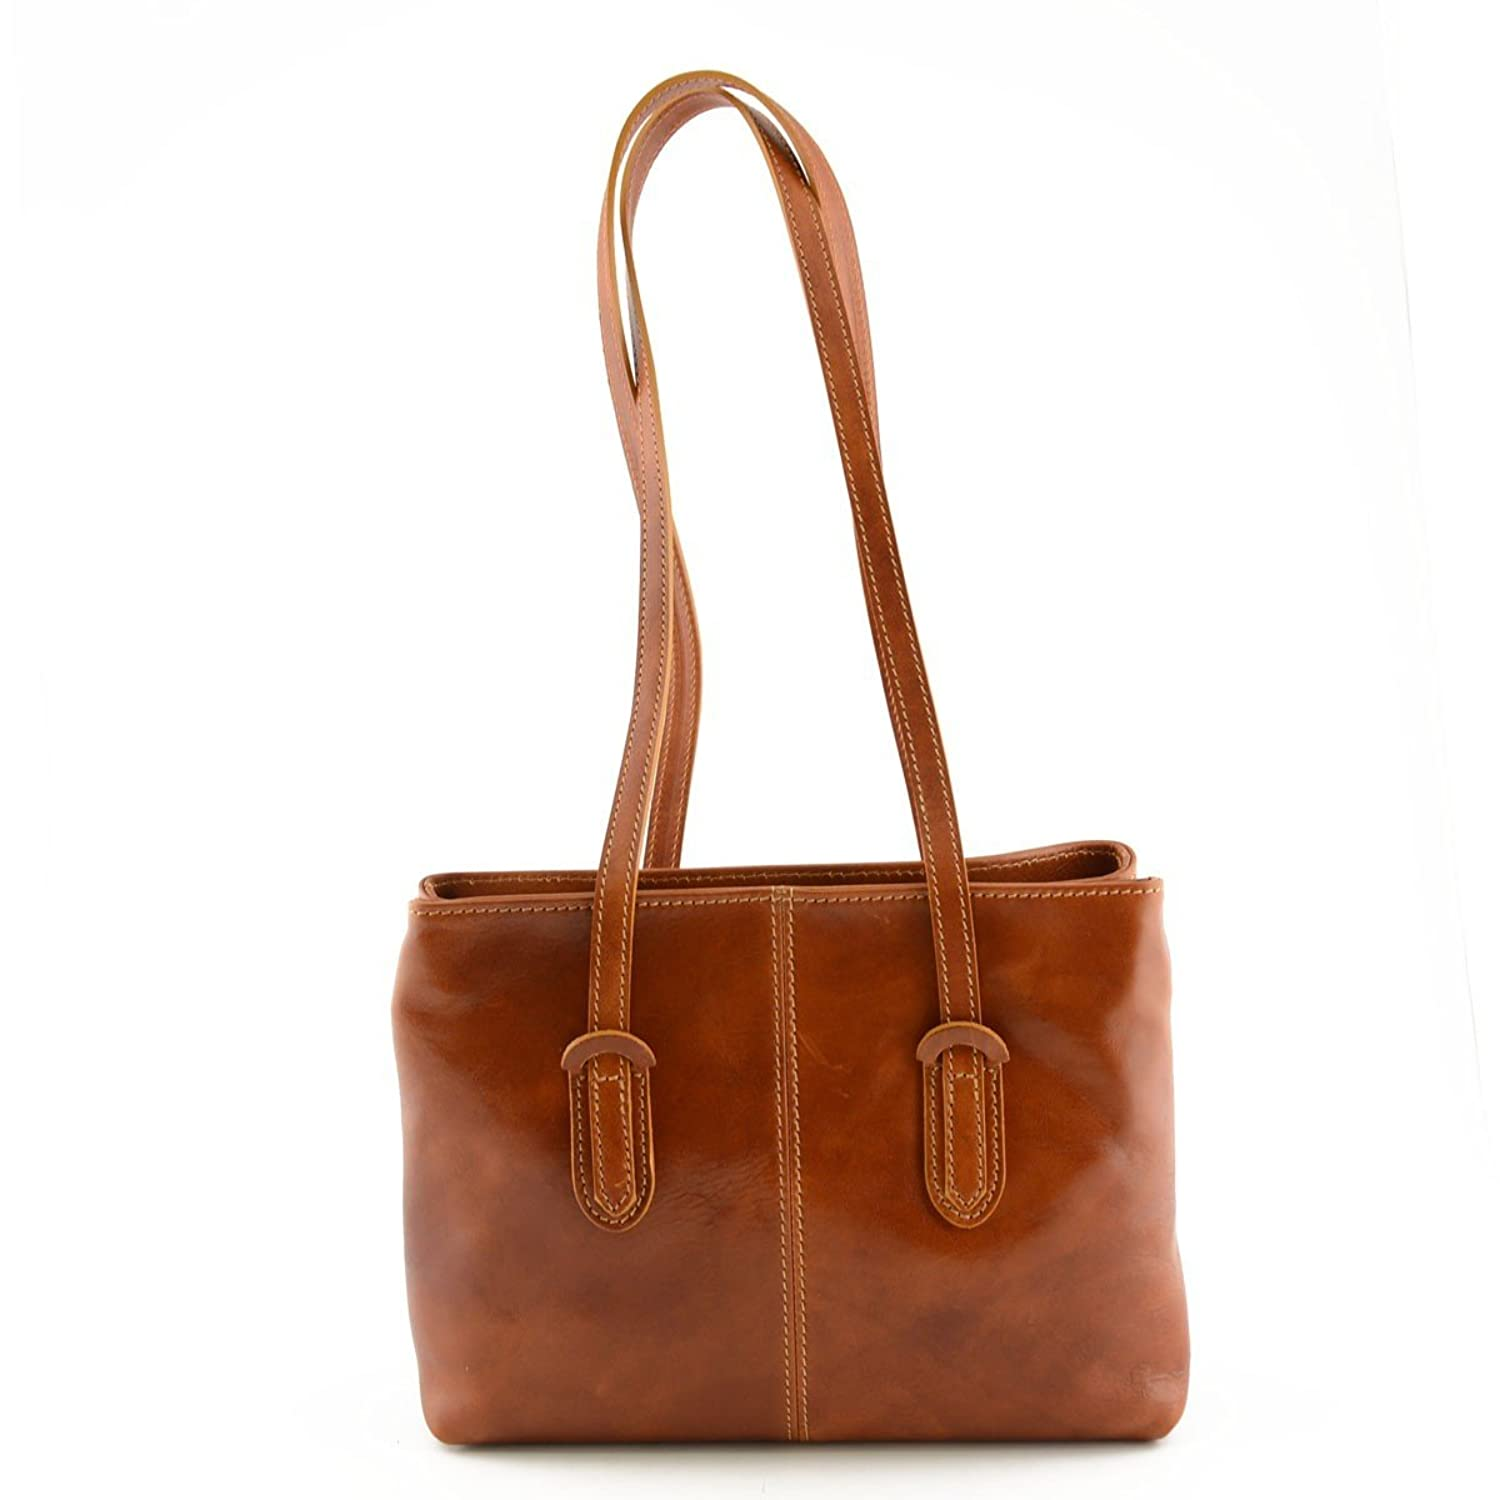 Genuine Leather Shoulder Bag For Woman With Double Zipped Compartment Color Cognac